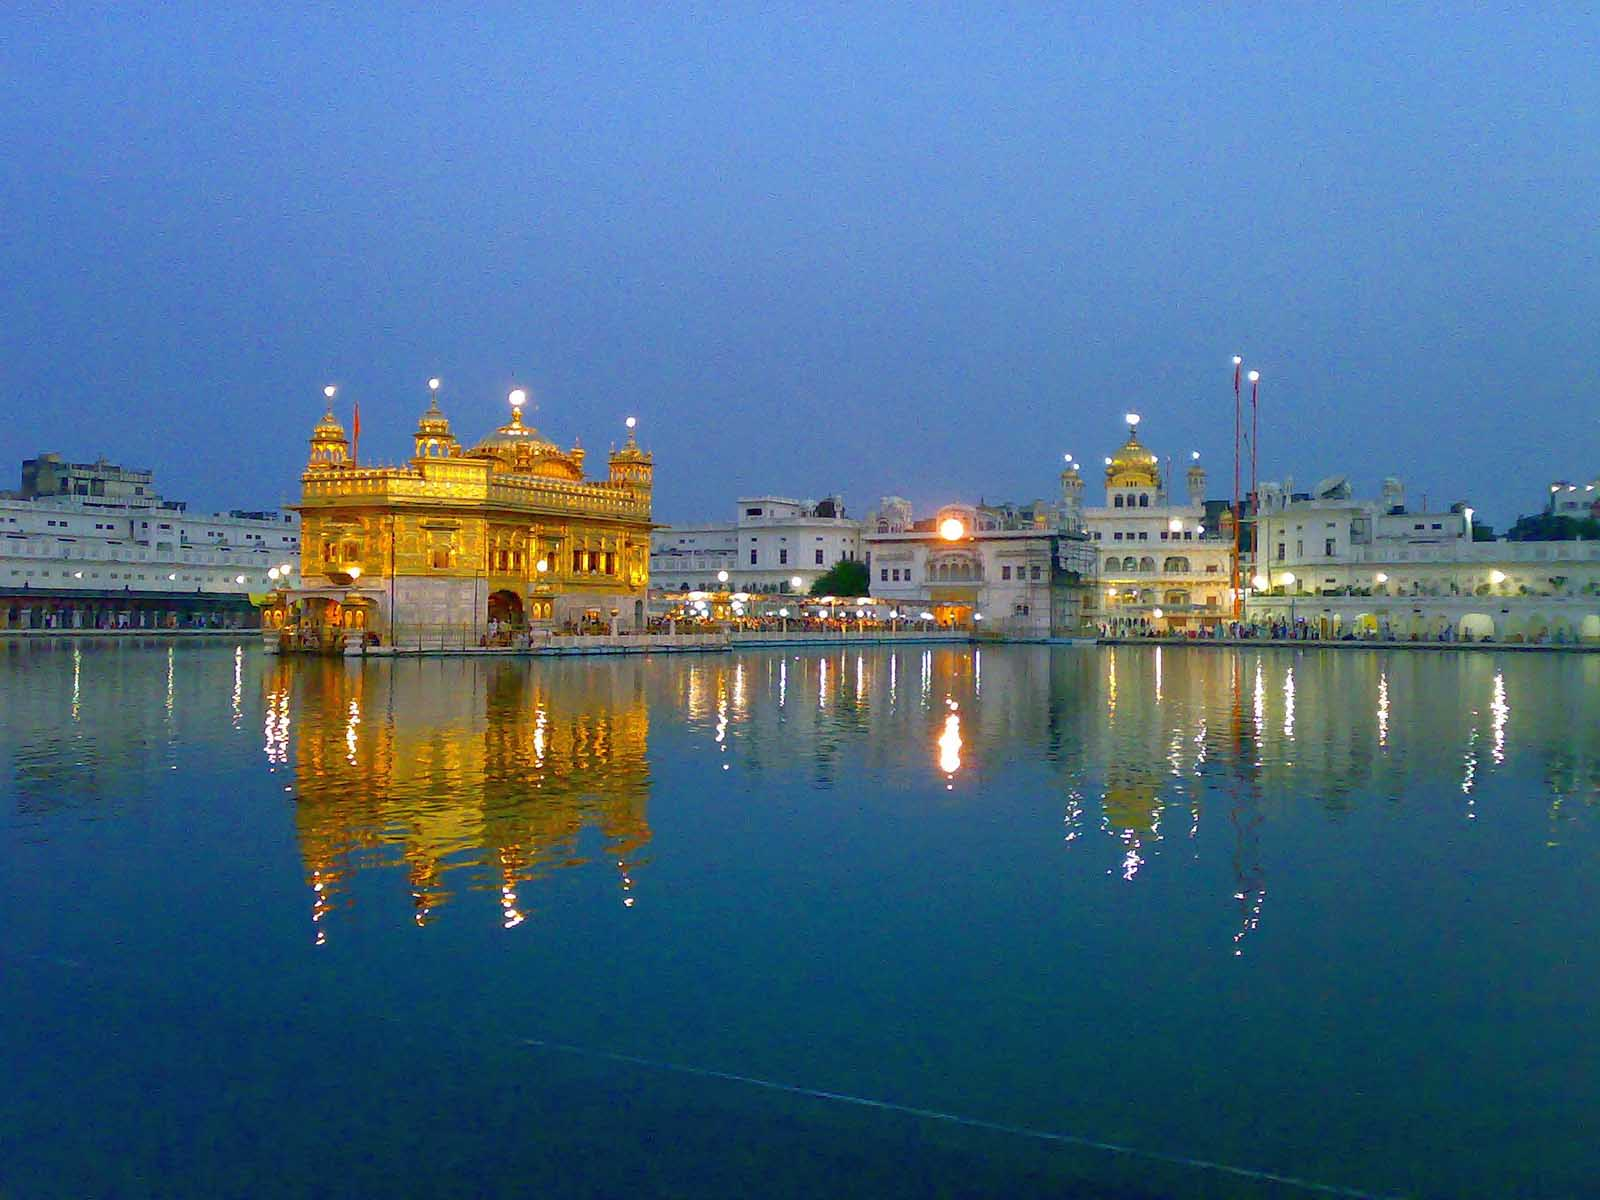 Sikh Wallpapers HD - WallpaperSafari